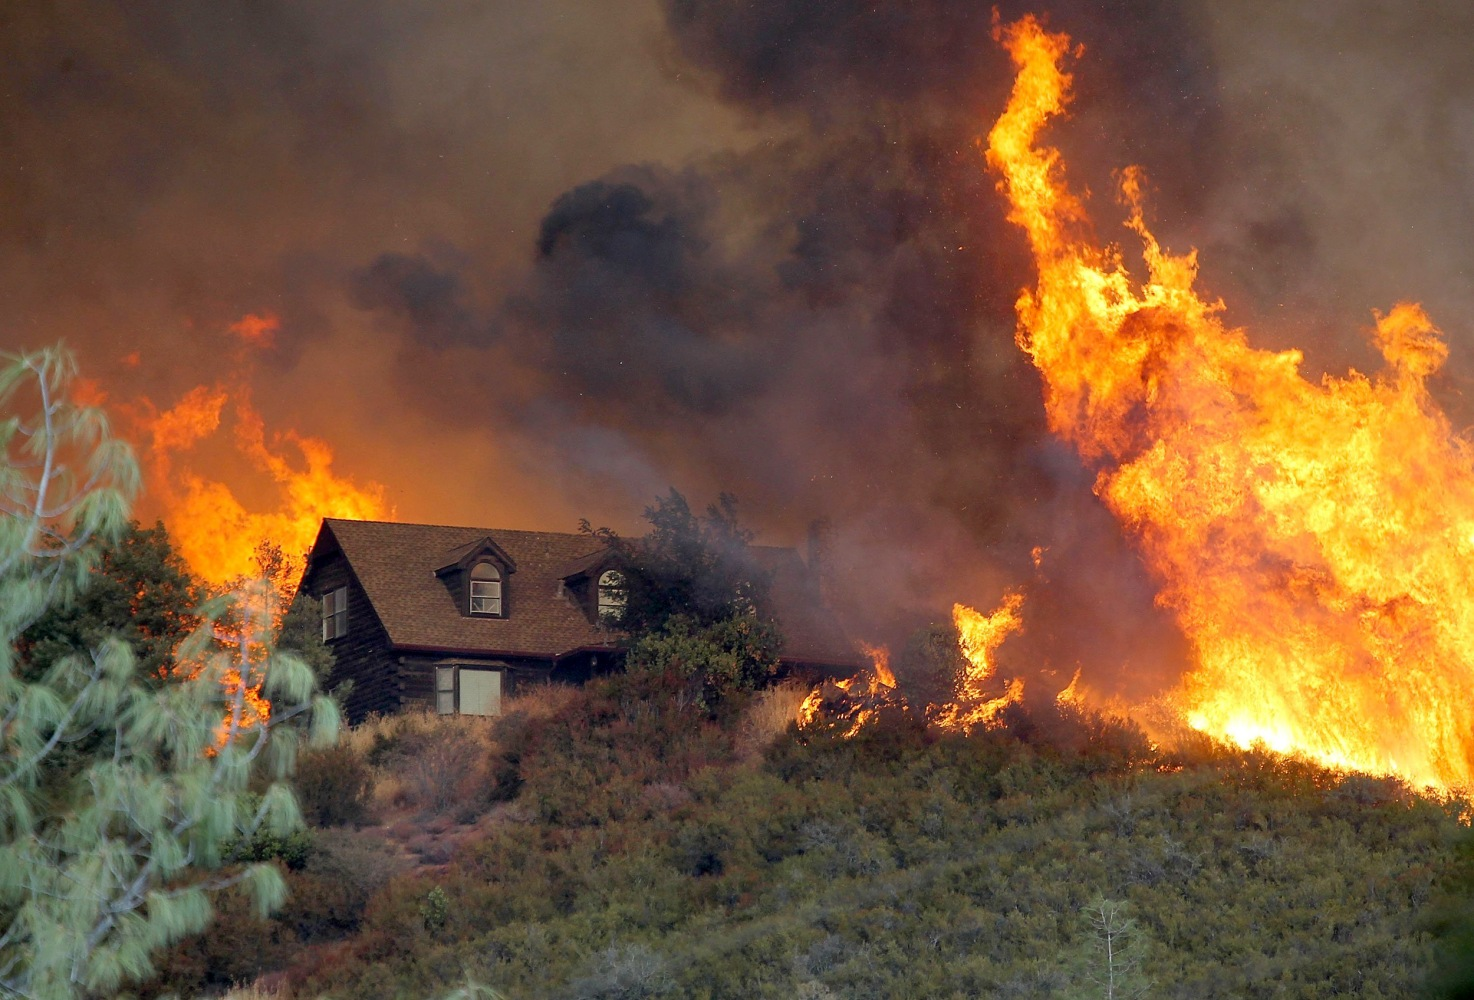 22500 California Wildfires Kill Firefighter Force Hundreds From